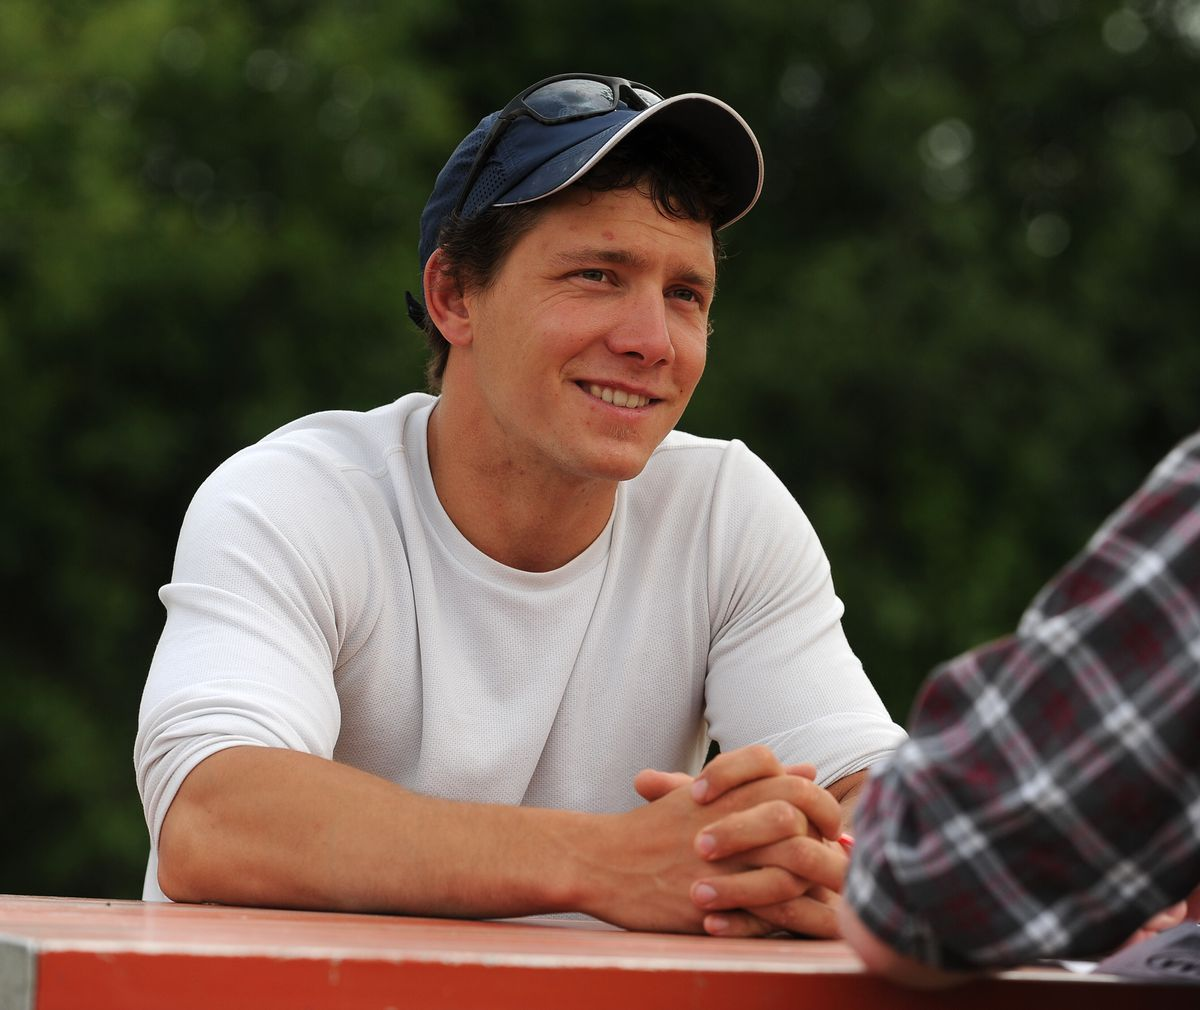 Andrew Kurka is photographed at Cuddy Family Park in Anchorage on June 28. (Bob Hallinen / Alaska Dispatch News)